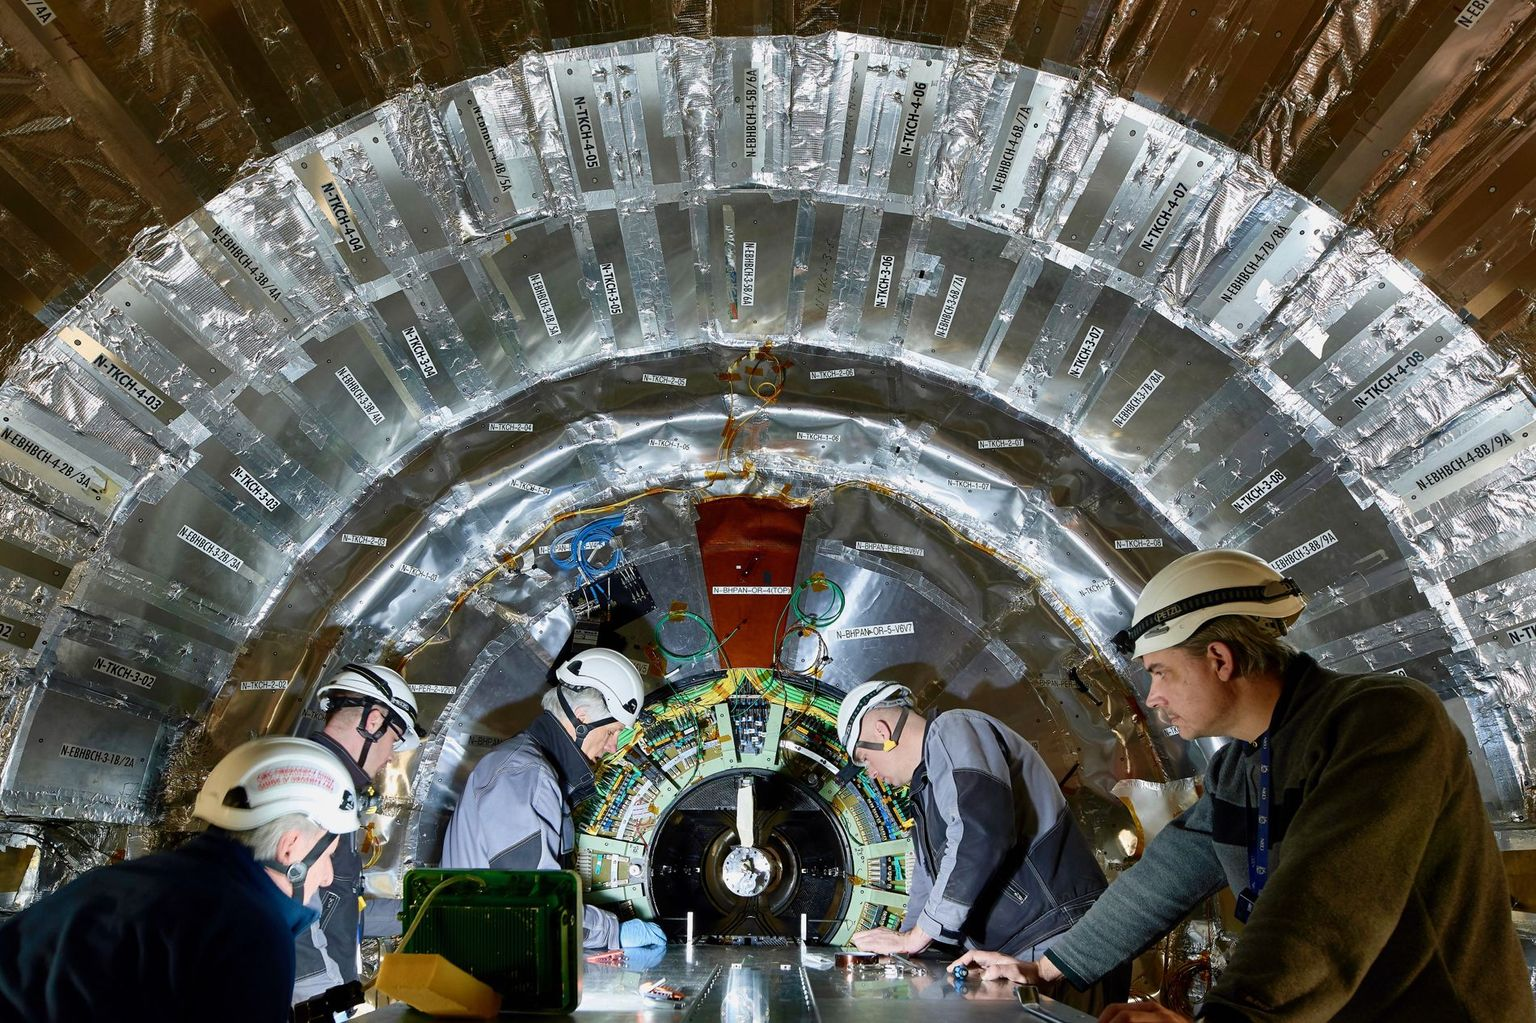 CMS particle physics detector on the  Large Hadron Collider at CERN.